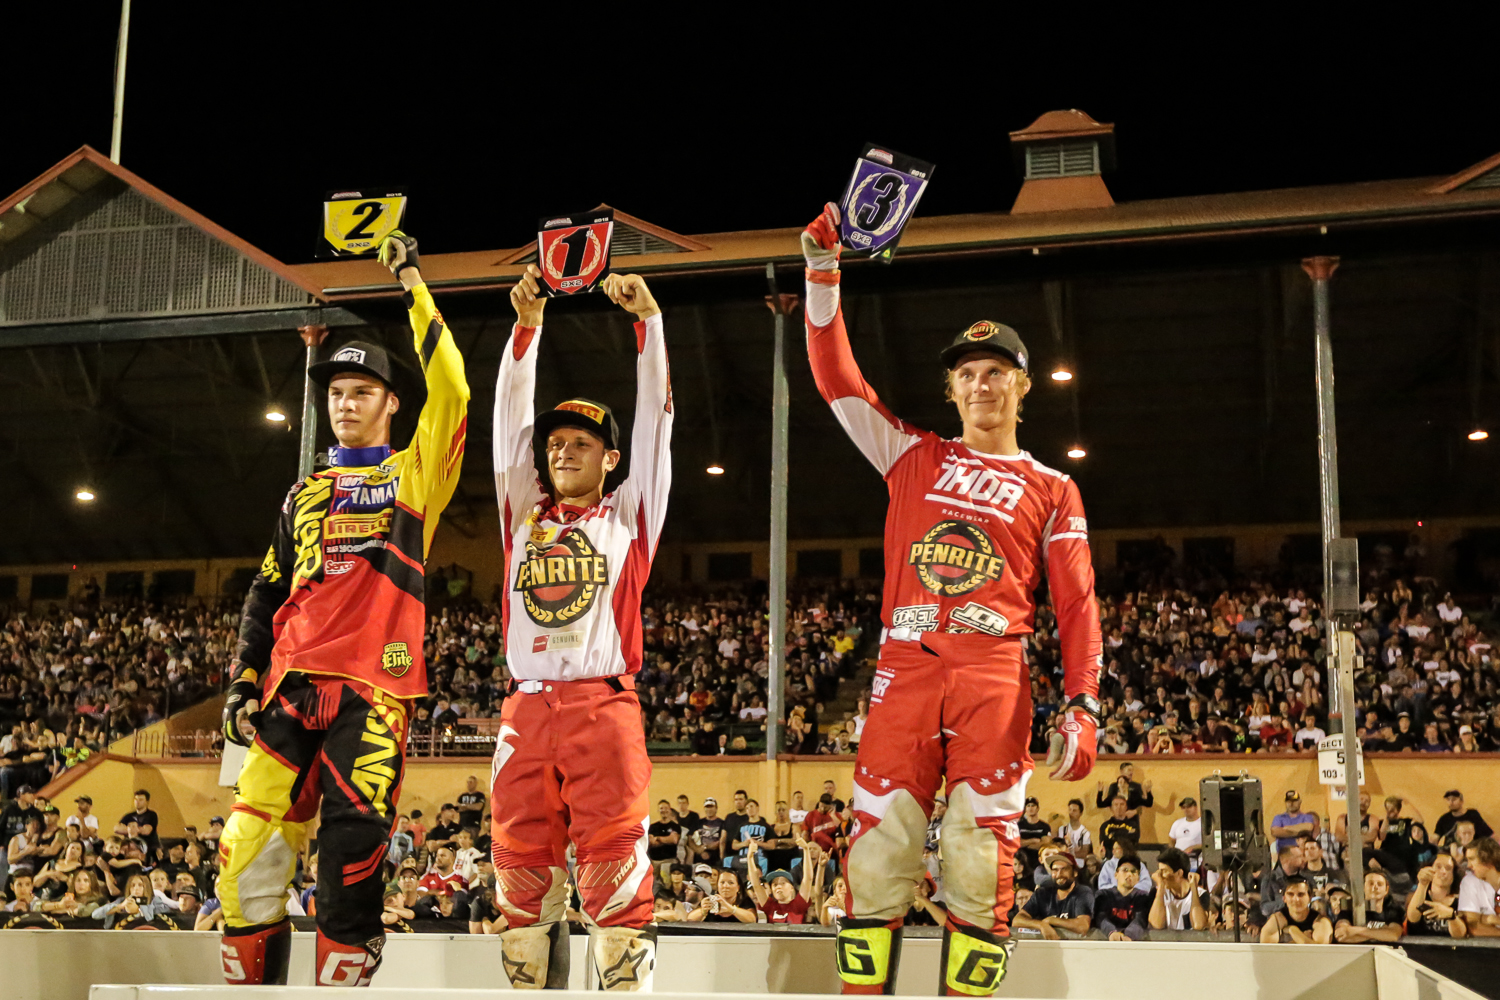 Richardson Stands on the SX2 podium alongside Clout and Decotis FifitySix Clix